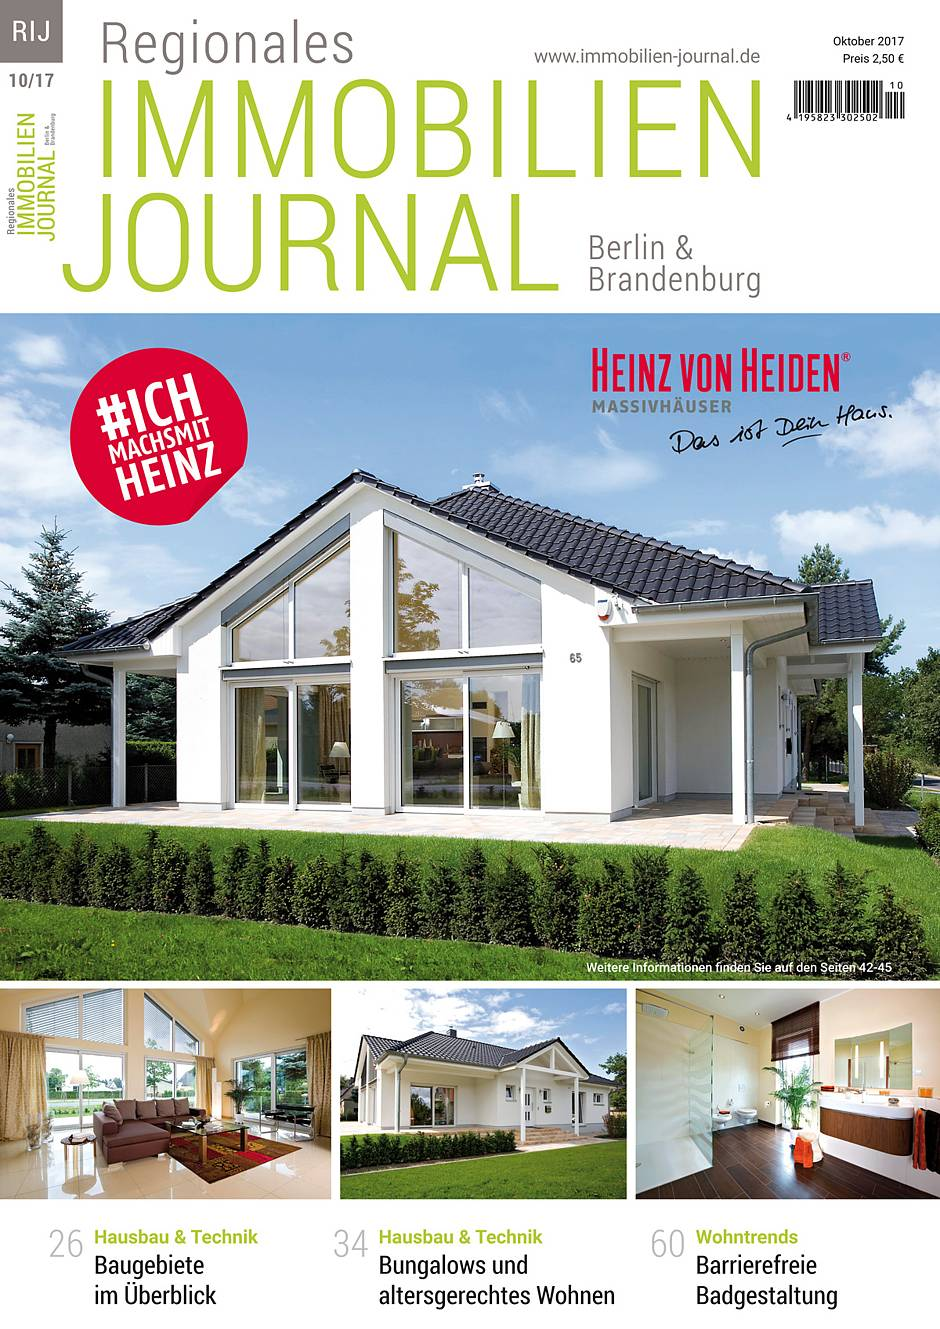 Regionales Immobilien Journal Berlin & Brandenburg Oktober 2017